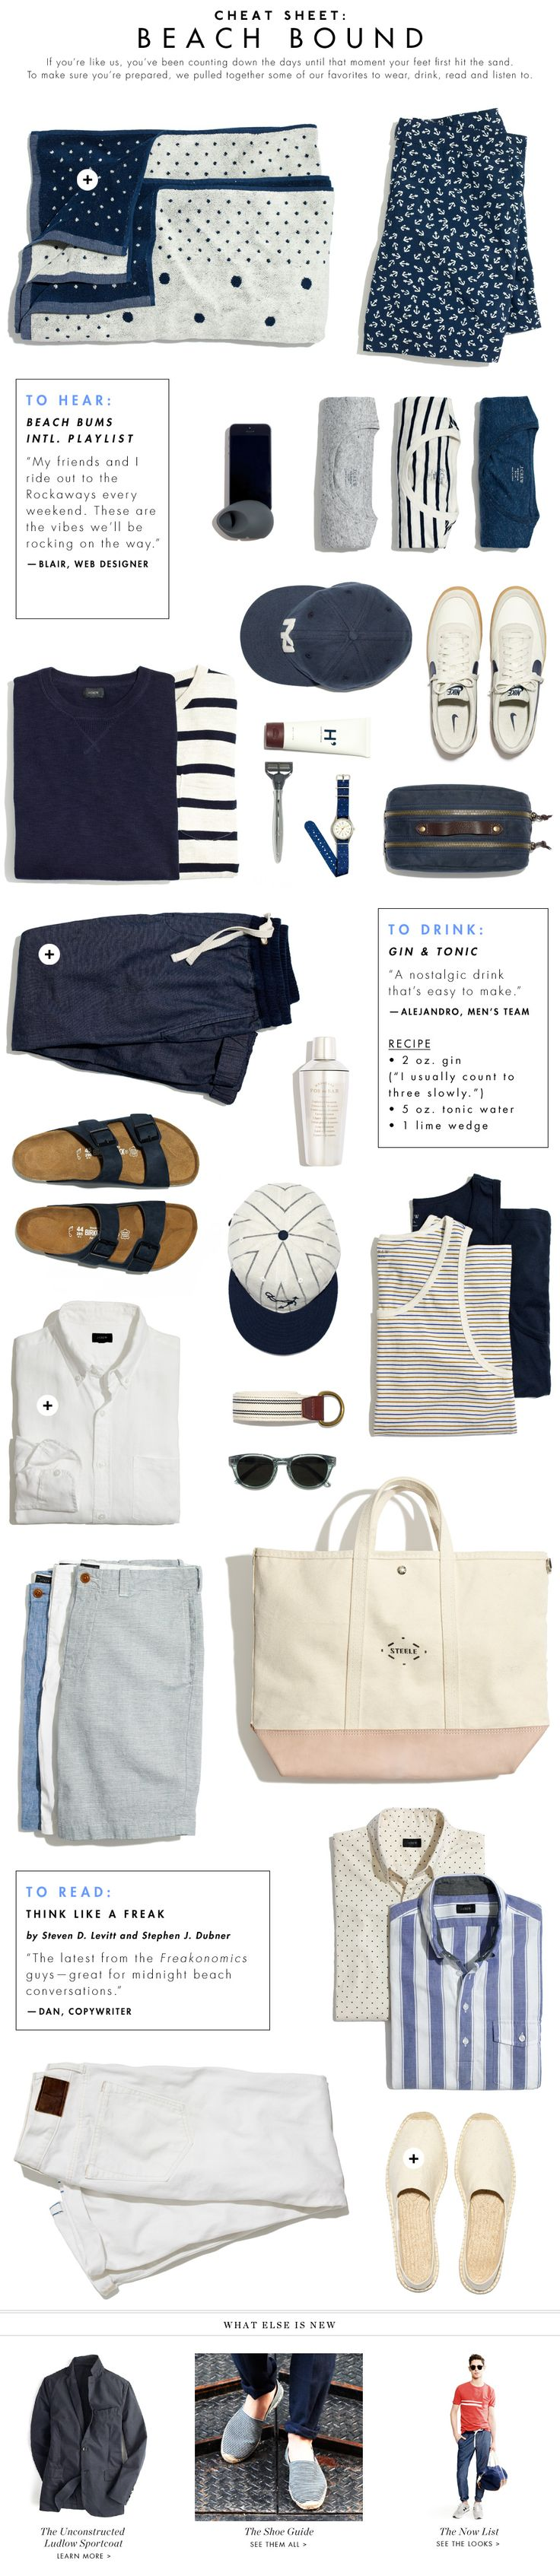 The Beach Bound Guy: A JCrew guide to living la vida playa.